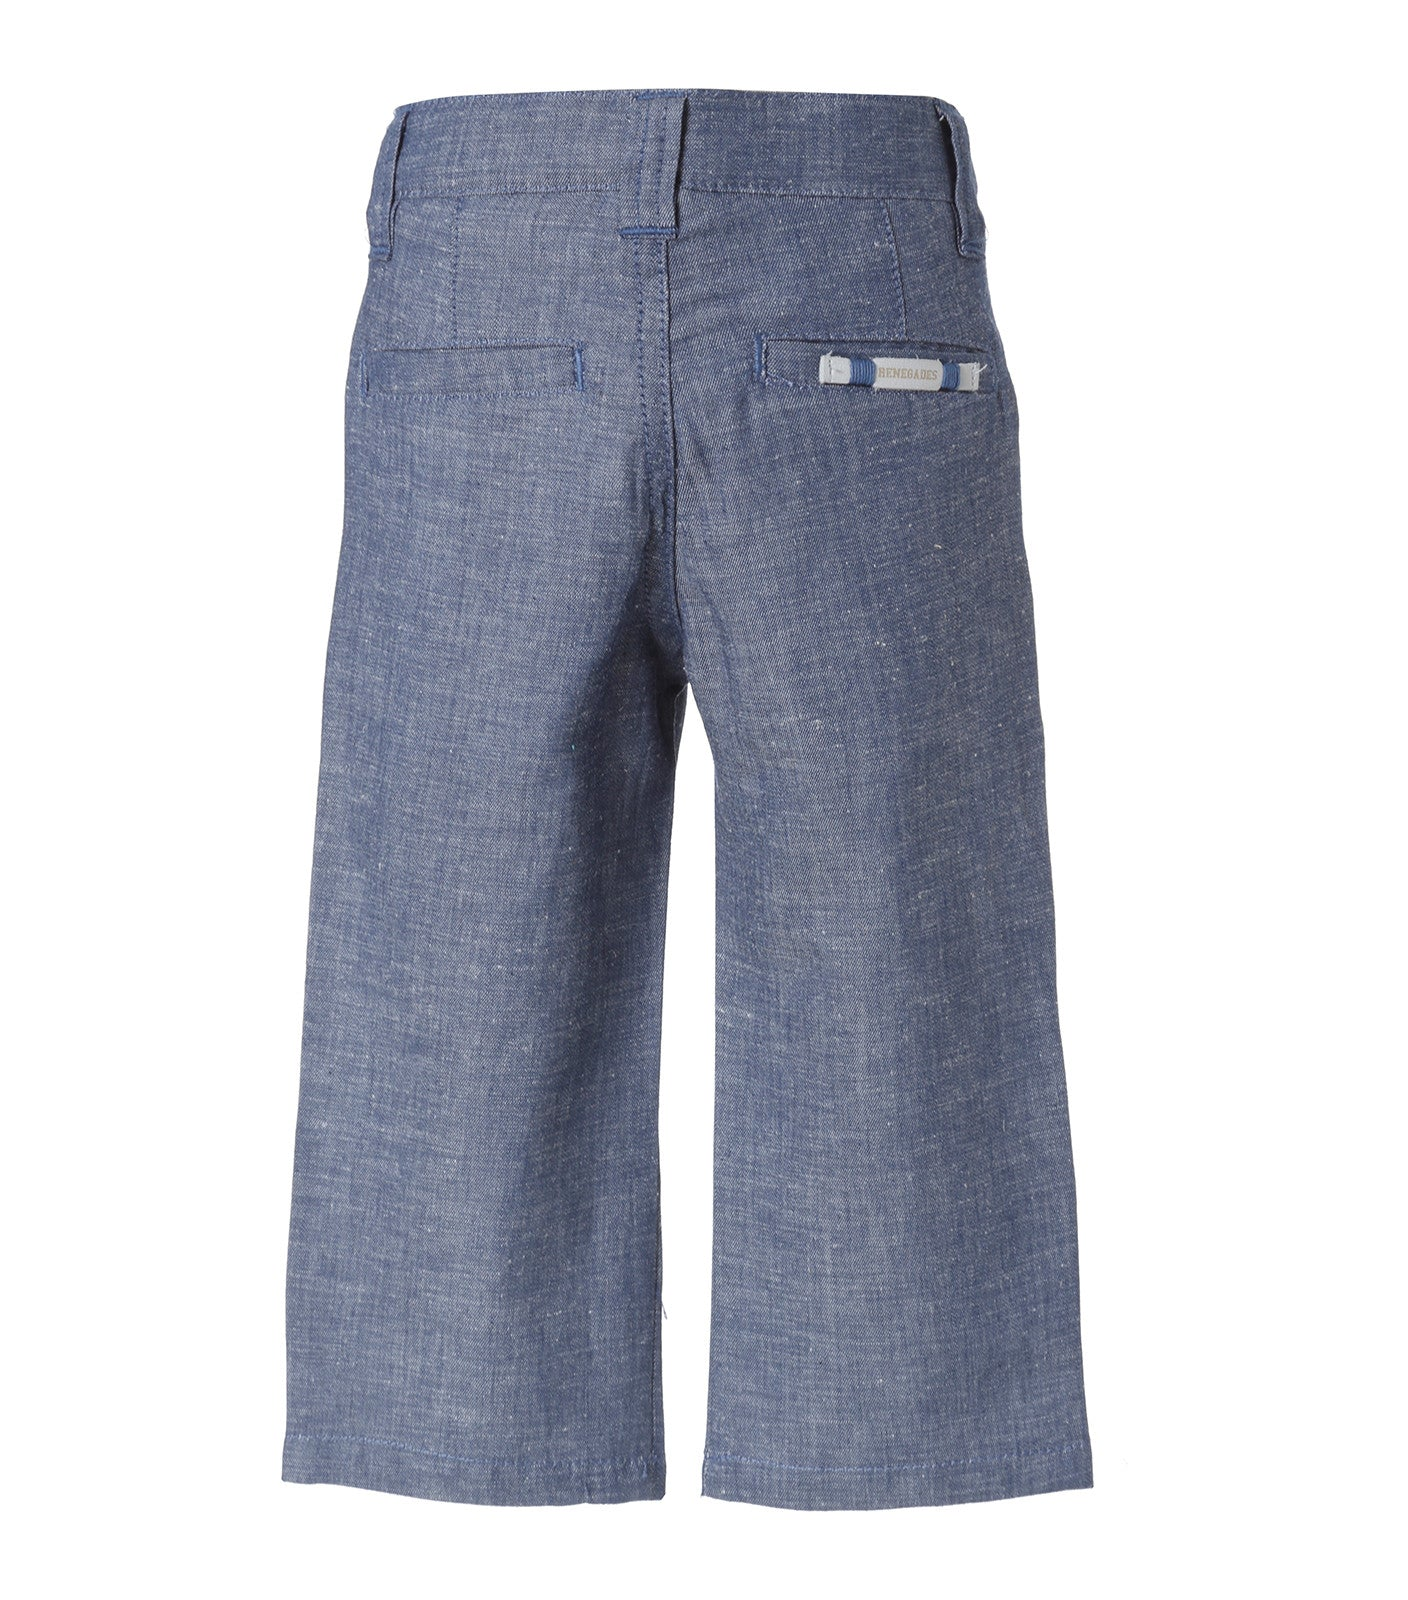 Baby Boy Pants in Navy Blue